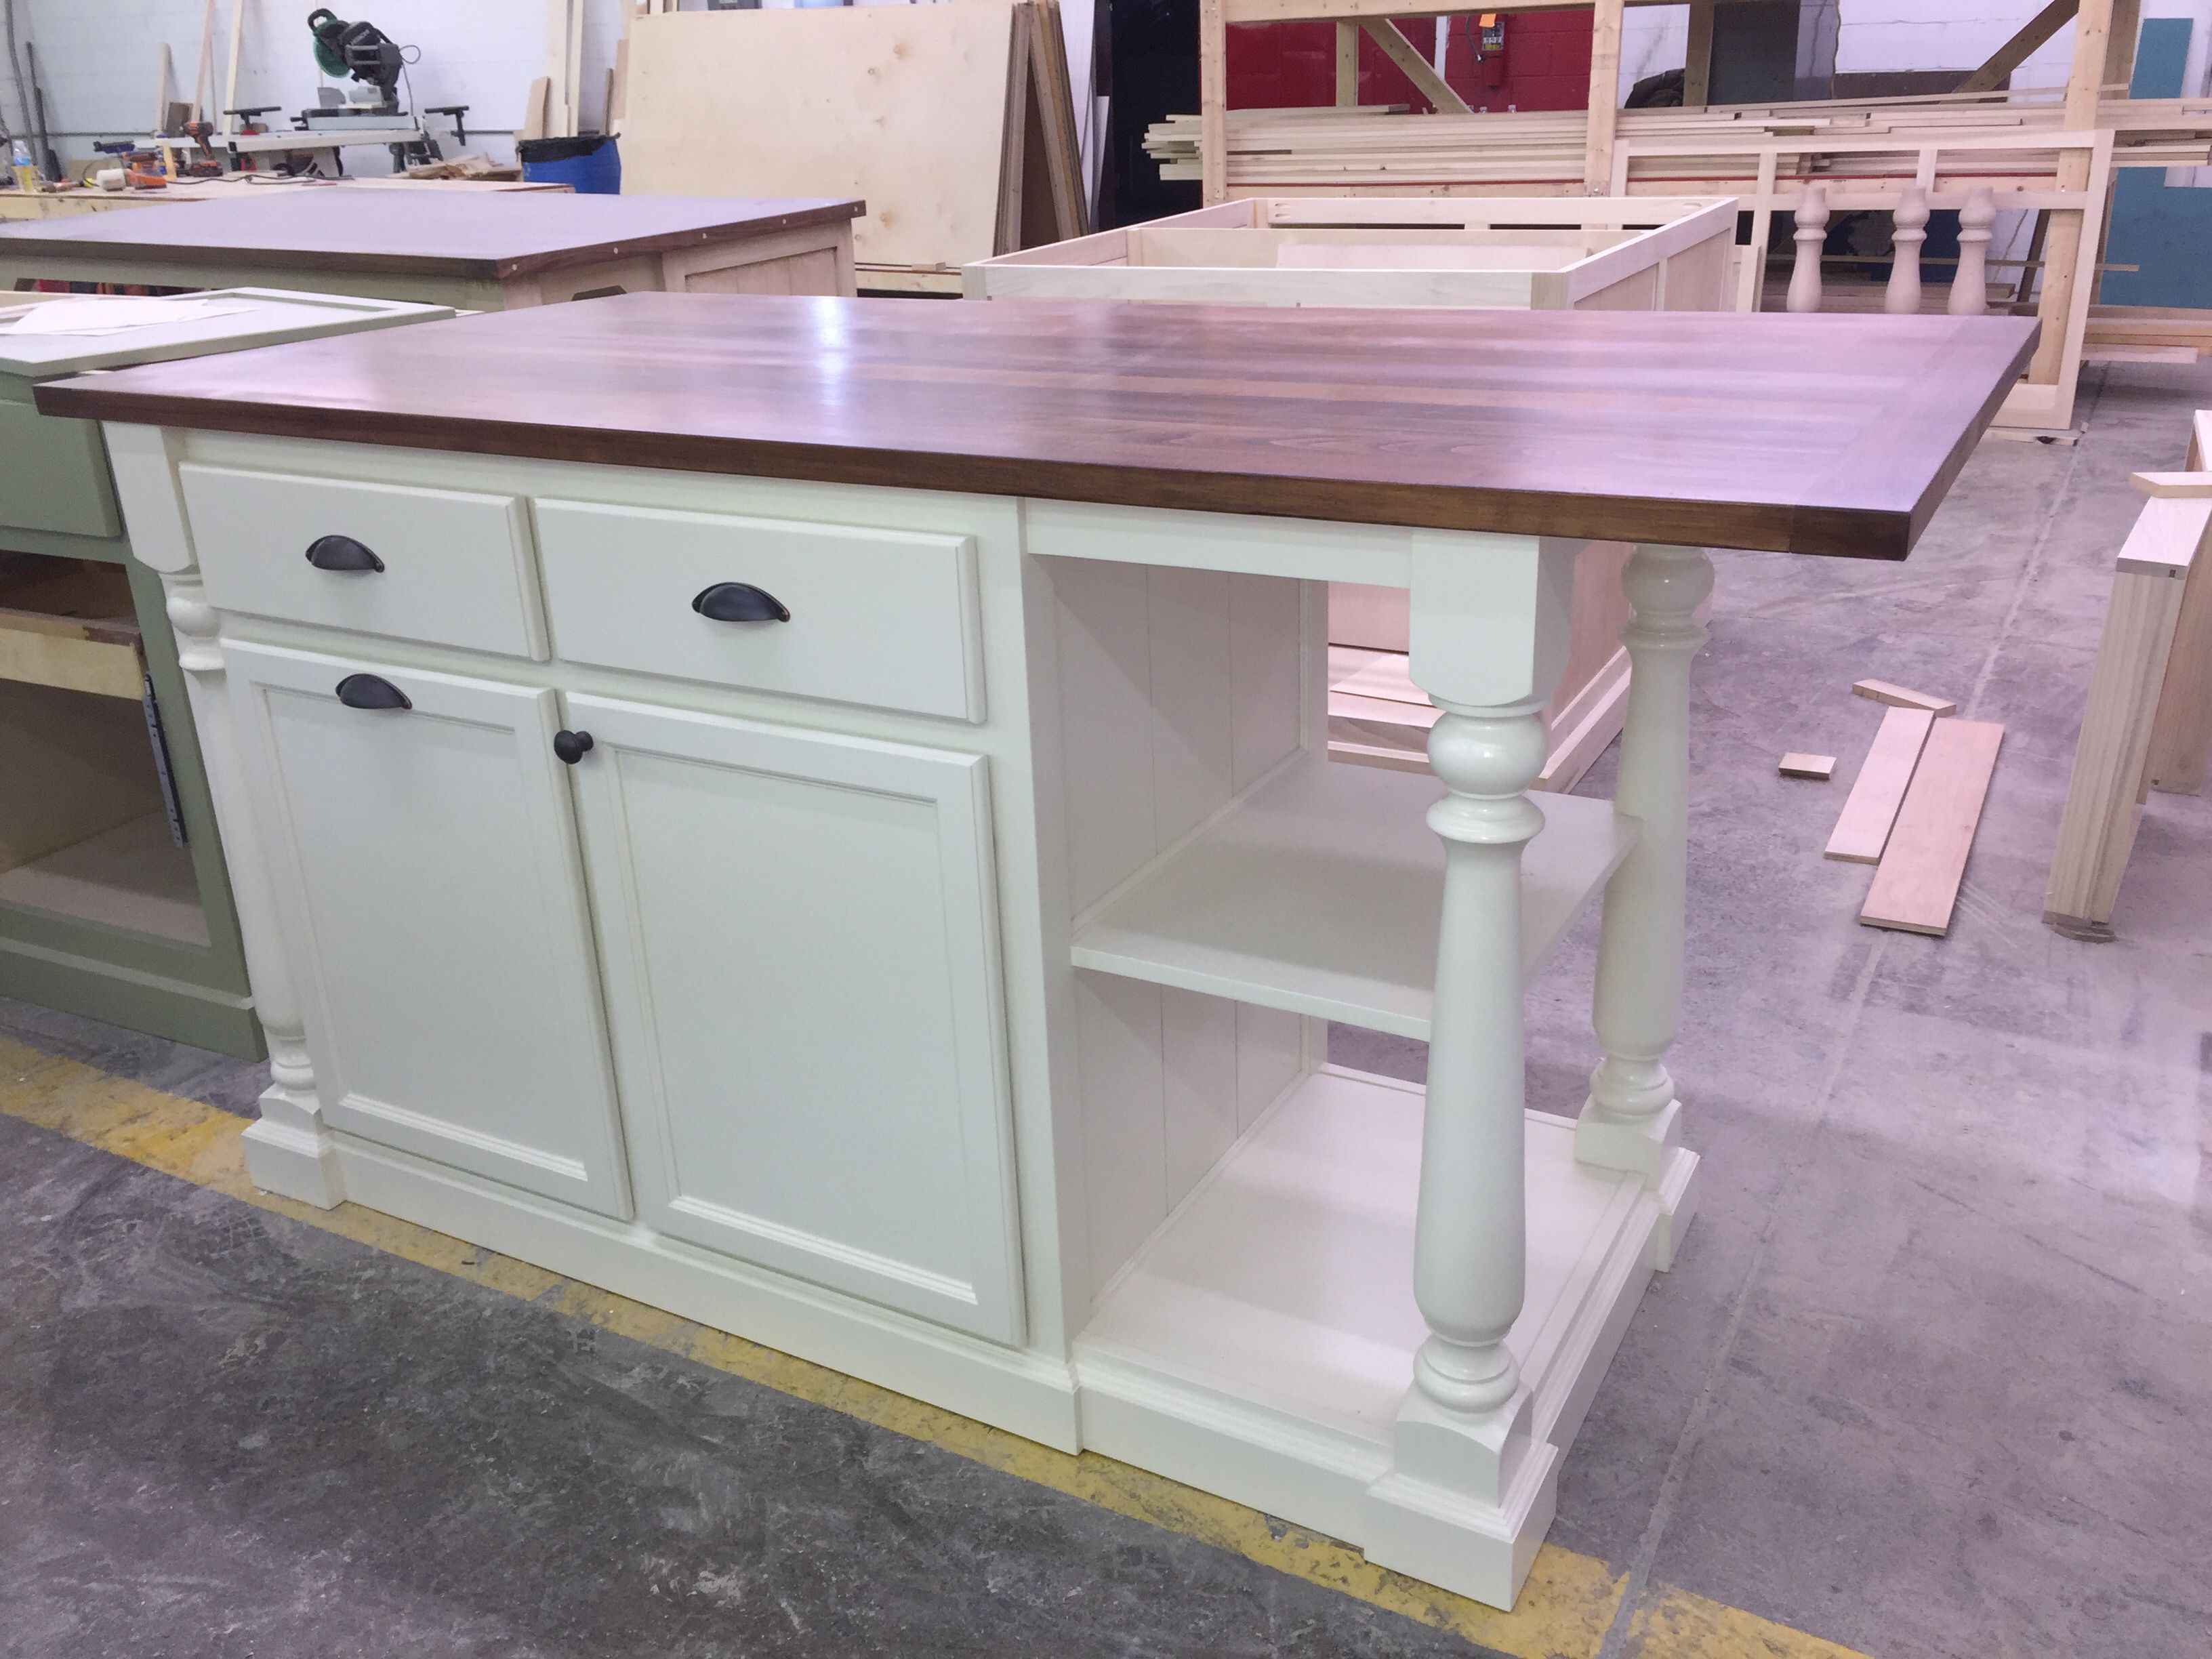 Kitchen Island With Seating - Etsy kitchen island